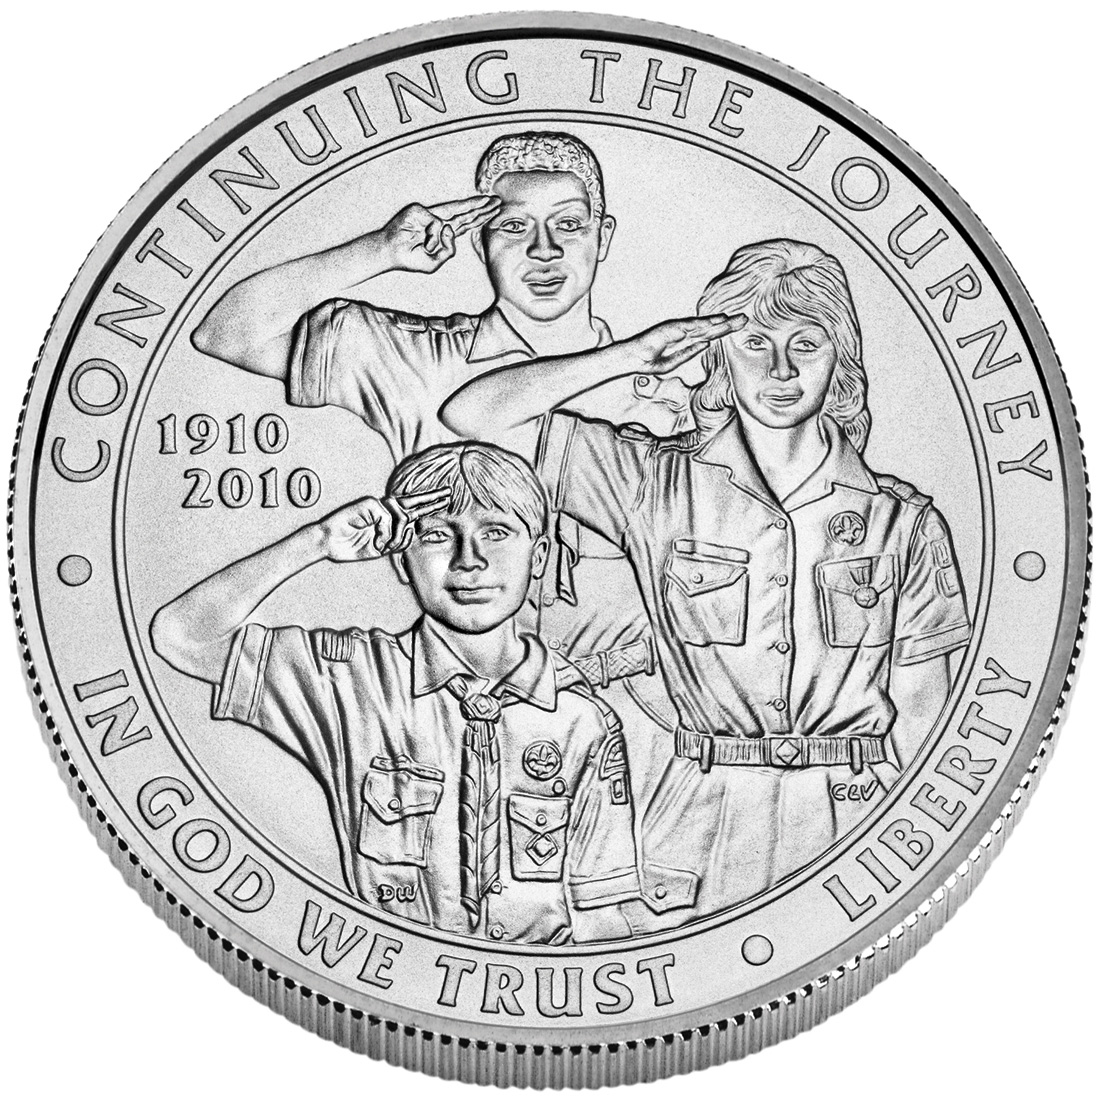 2010 Boy Scouts Of America Centennial Commemorative Silver One Dollar Uncirculated Obverse